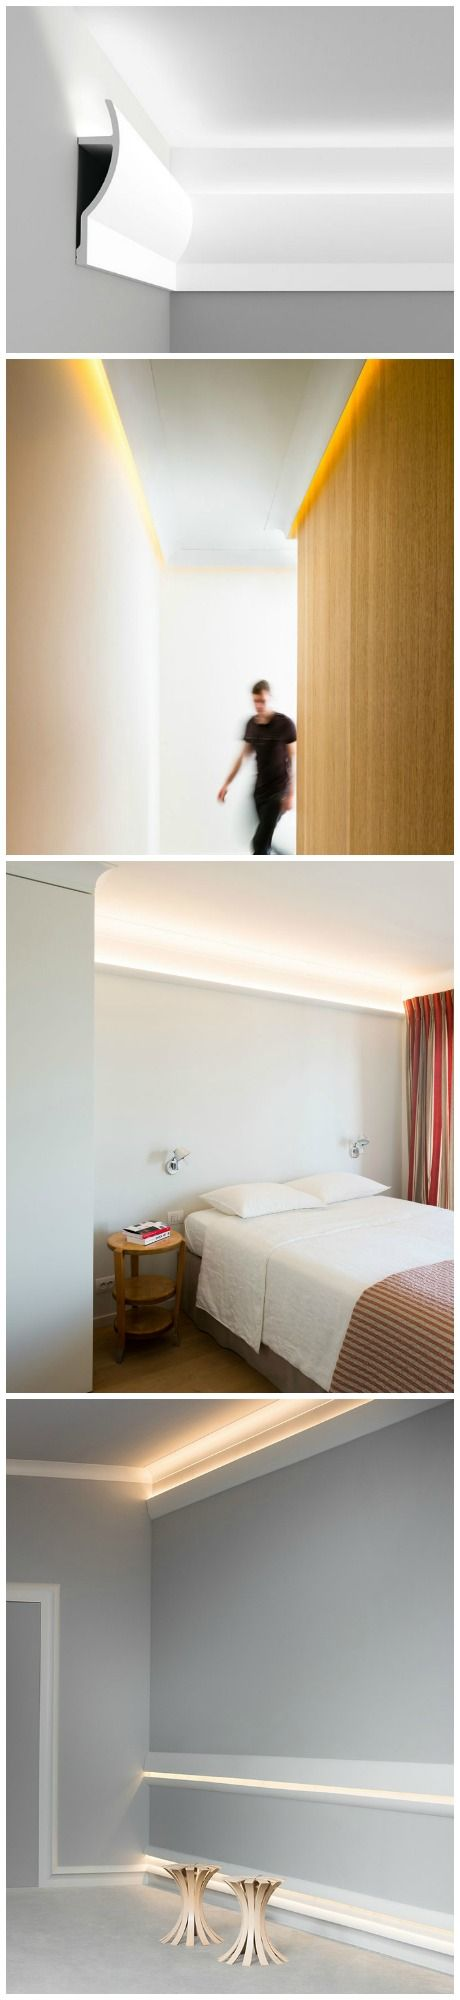 Install your very own cool atmospheric indirect lighting in any room using easy to install DIY Crown Molding and LED rope lighting.